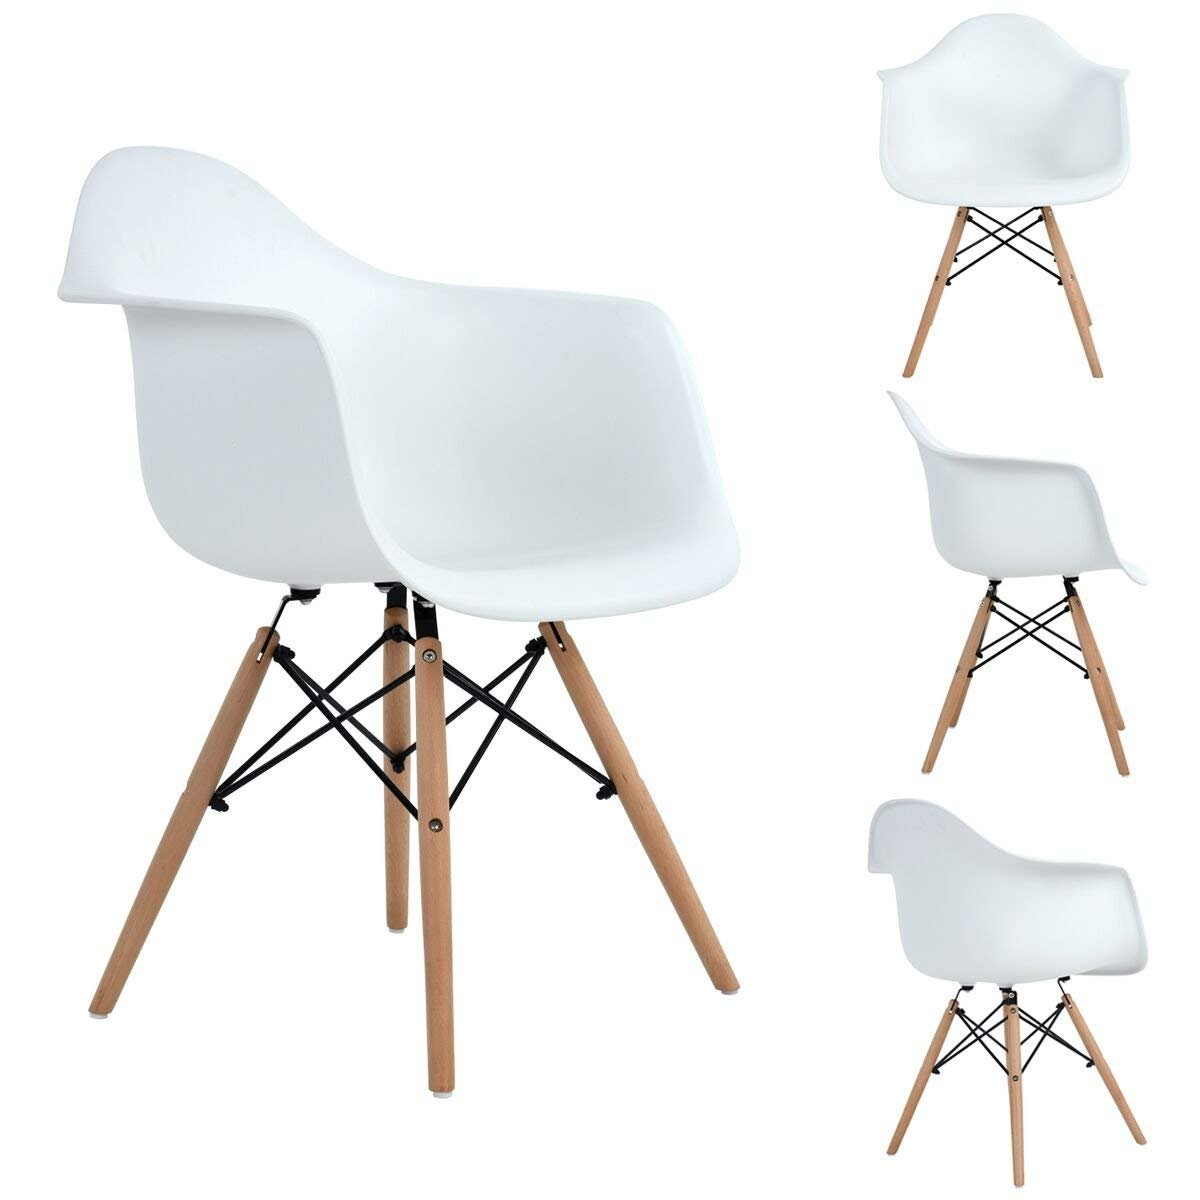 Aingoo Eiffel Style Chairs Kitchen Chairs Set of 4 Arms Dining Chair Mid Century for Living Lounge Room Modern Natural Wood Legs White